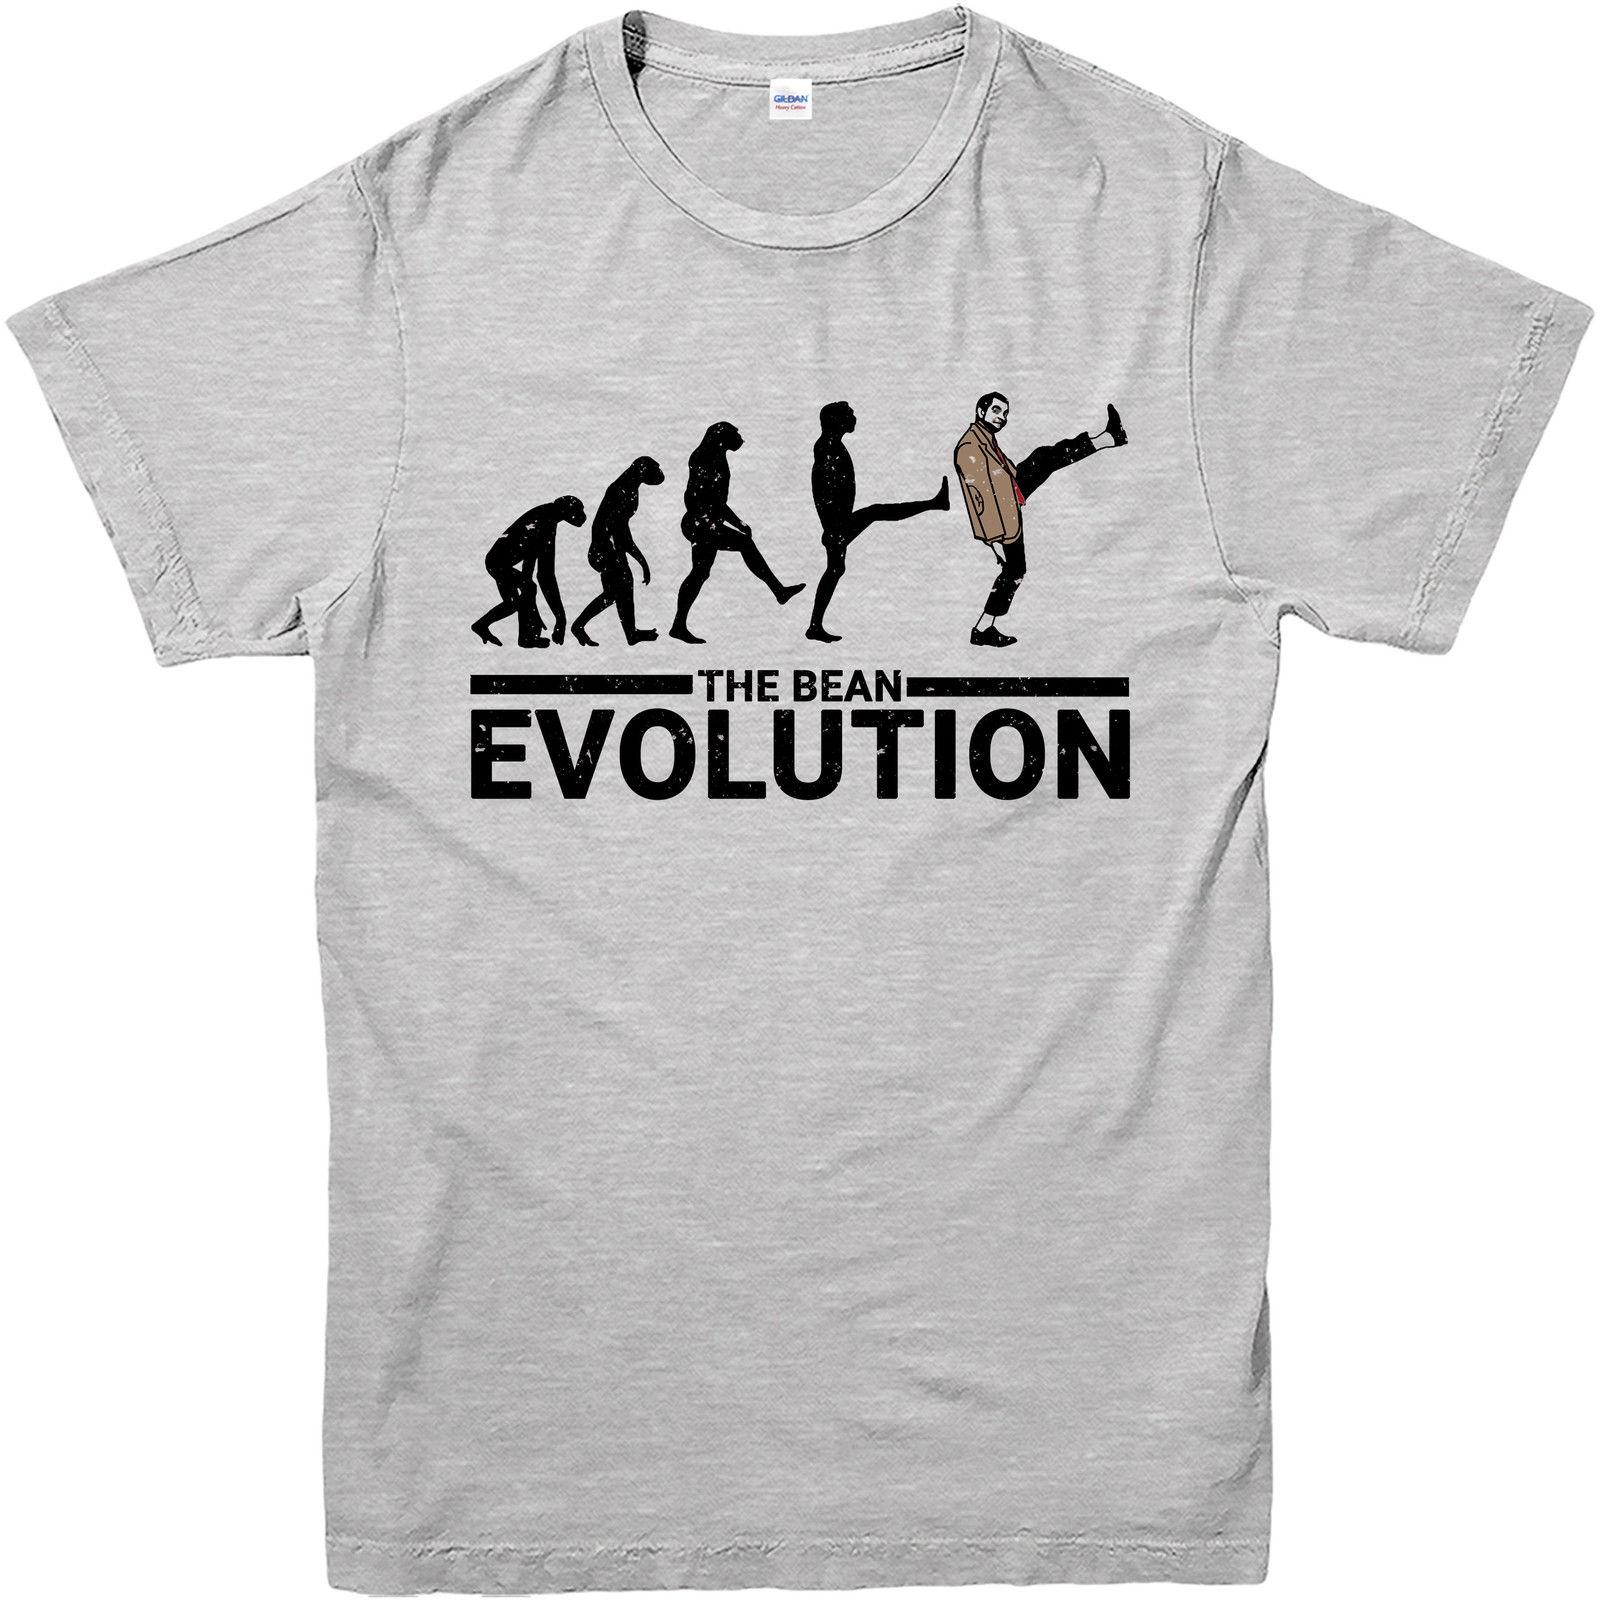 d9977cab3 Mr Bean T-Shirt,The Bean Evolution Spoof,Adult And Kids Sizes Men Adult T  Shirt Short Sleeve Cotton Online with $12.99/Piece on Bstdhgate09's Store  ...